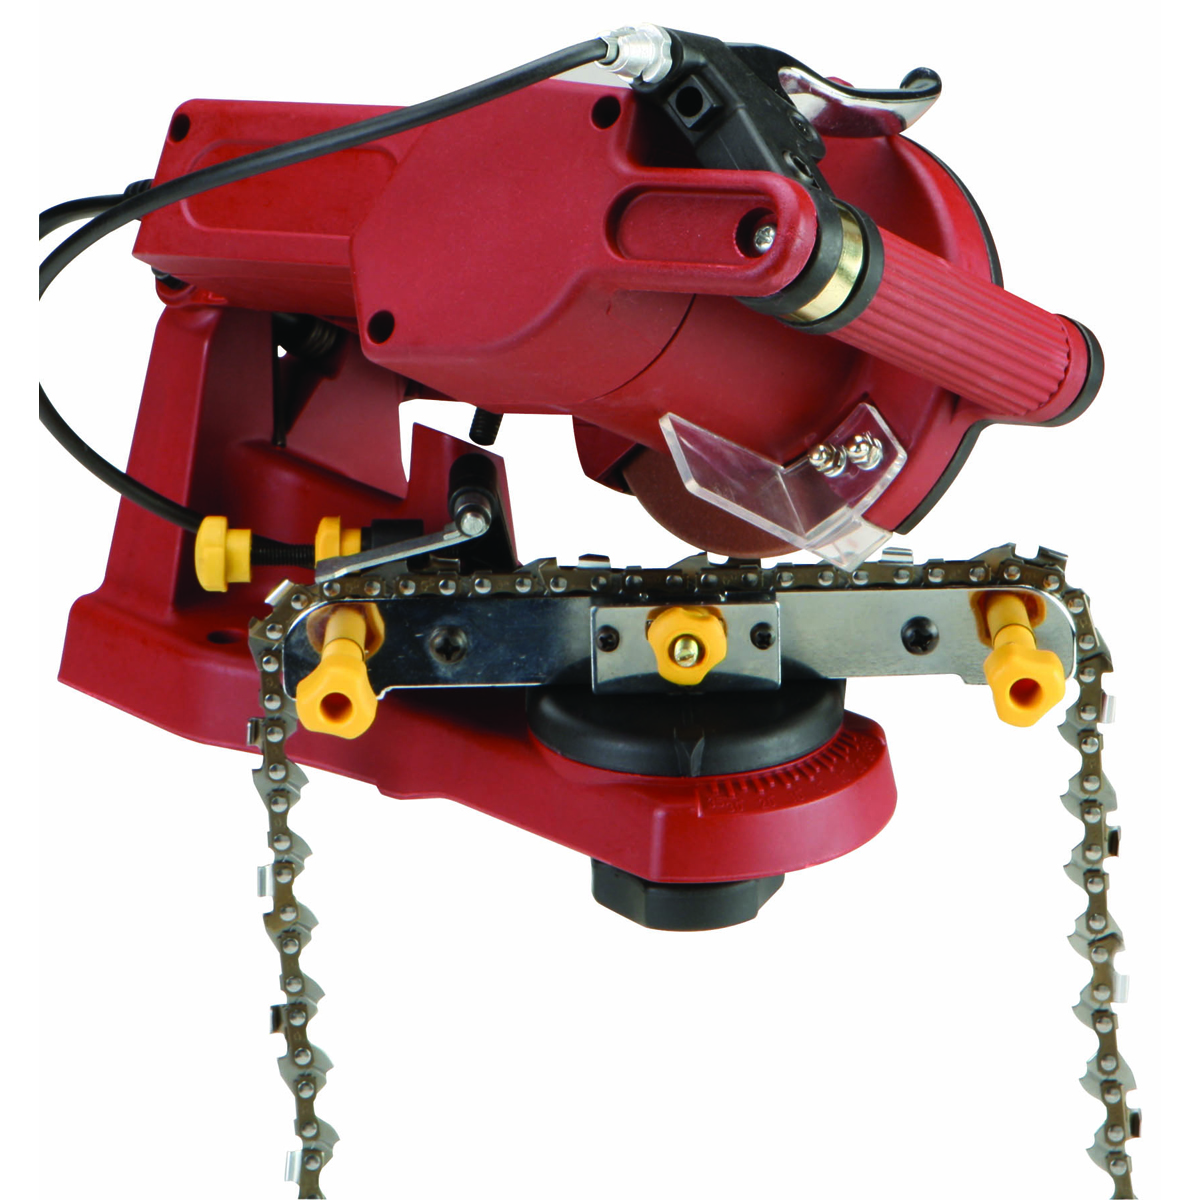 Old Chainsaw Sharpener Save On This Electric Chain Sharpener Harbor Freight Chainsaw Sharpener Video Harbor Freight Chainsaw Sharpener Manual houzz-03 Harbor Freight Chainsaw Sharpener